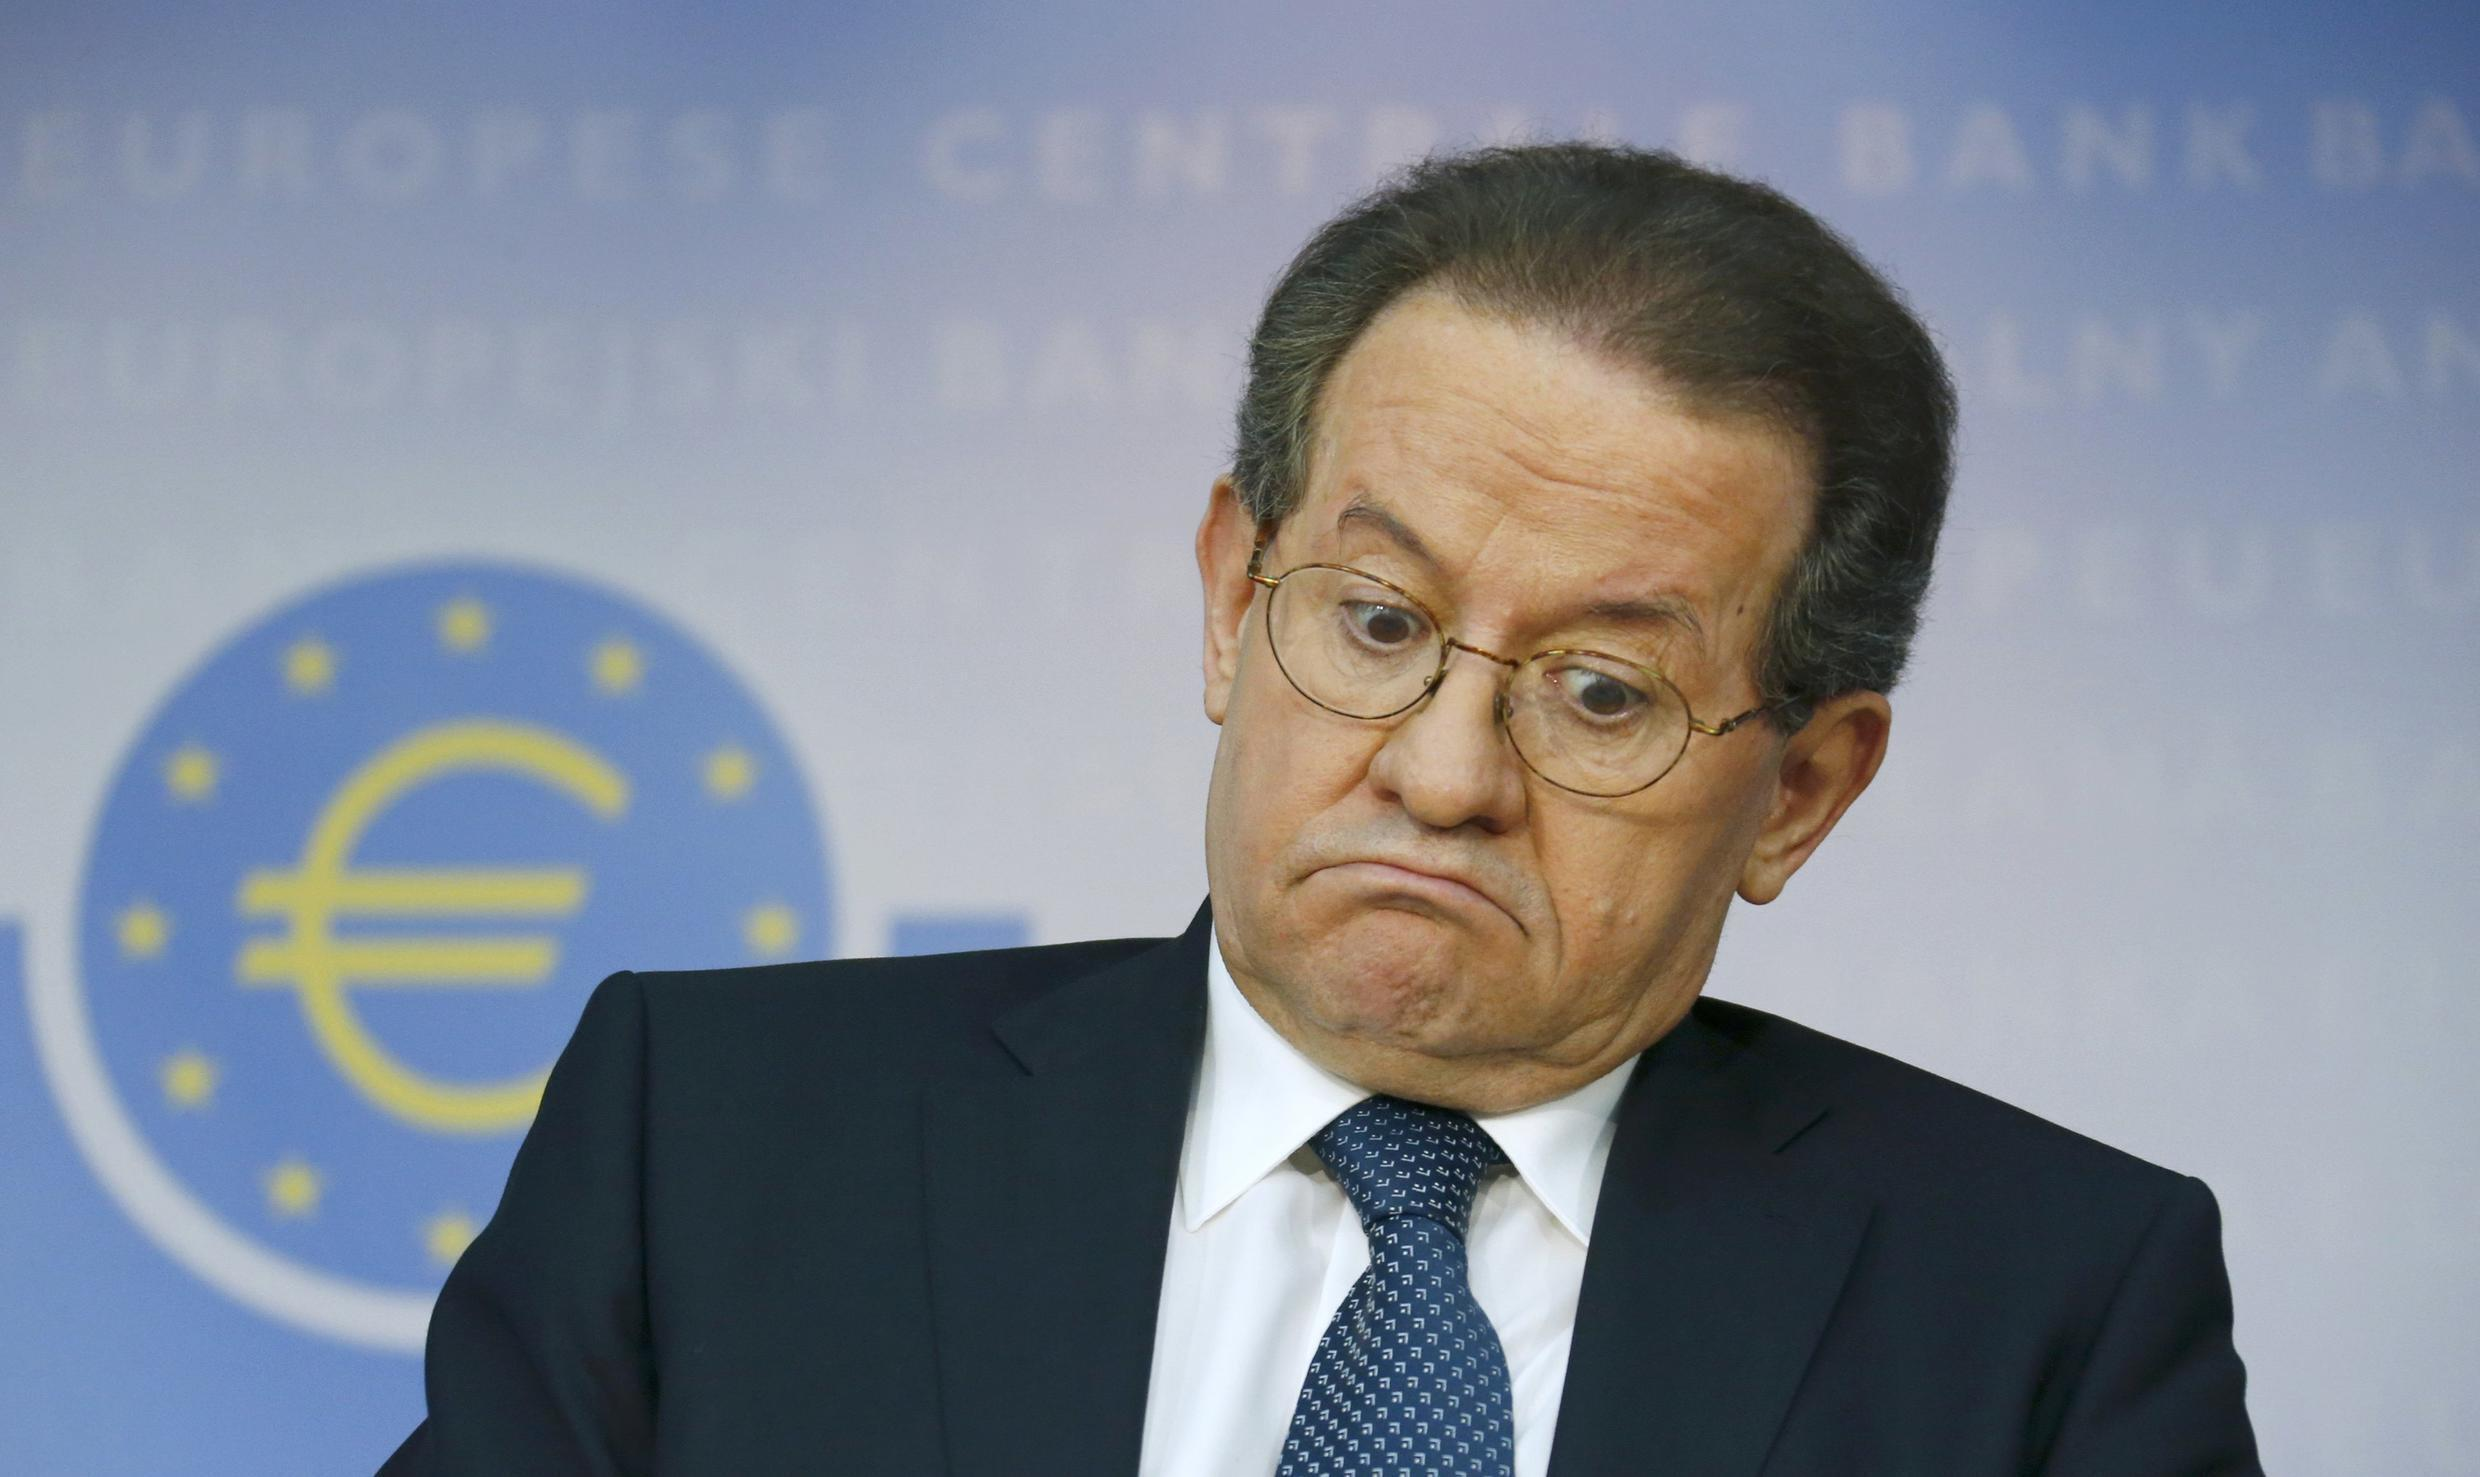 European Central Bank (ECB) Vice President Vitor Constancio attends a news conference at the ECB in Frankfurt October 26, 2014.